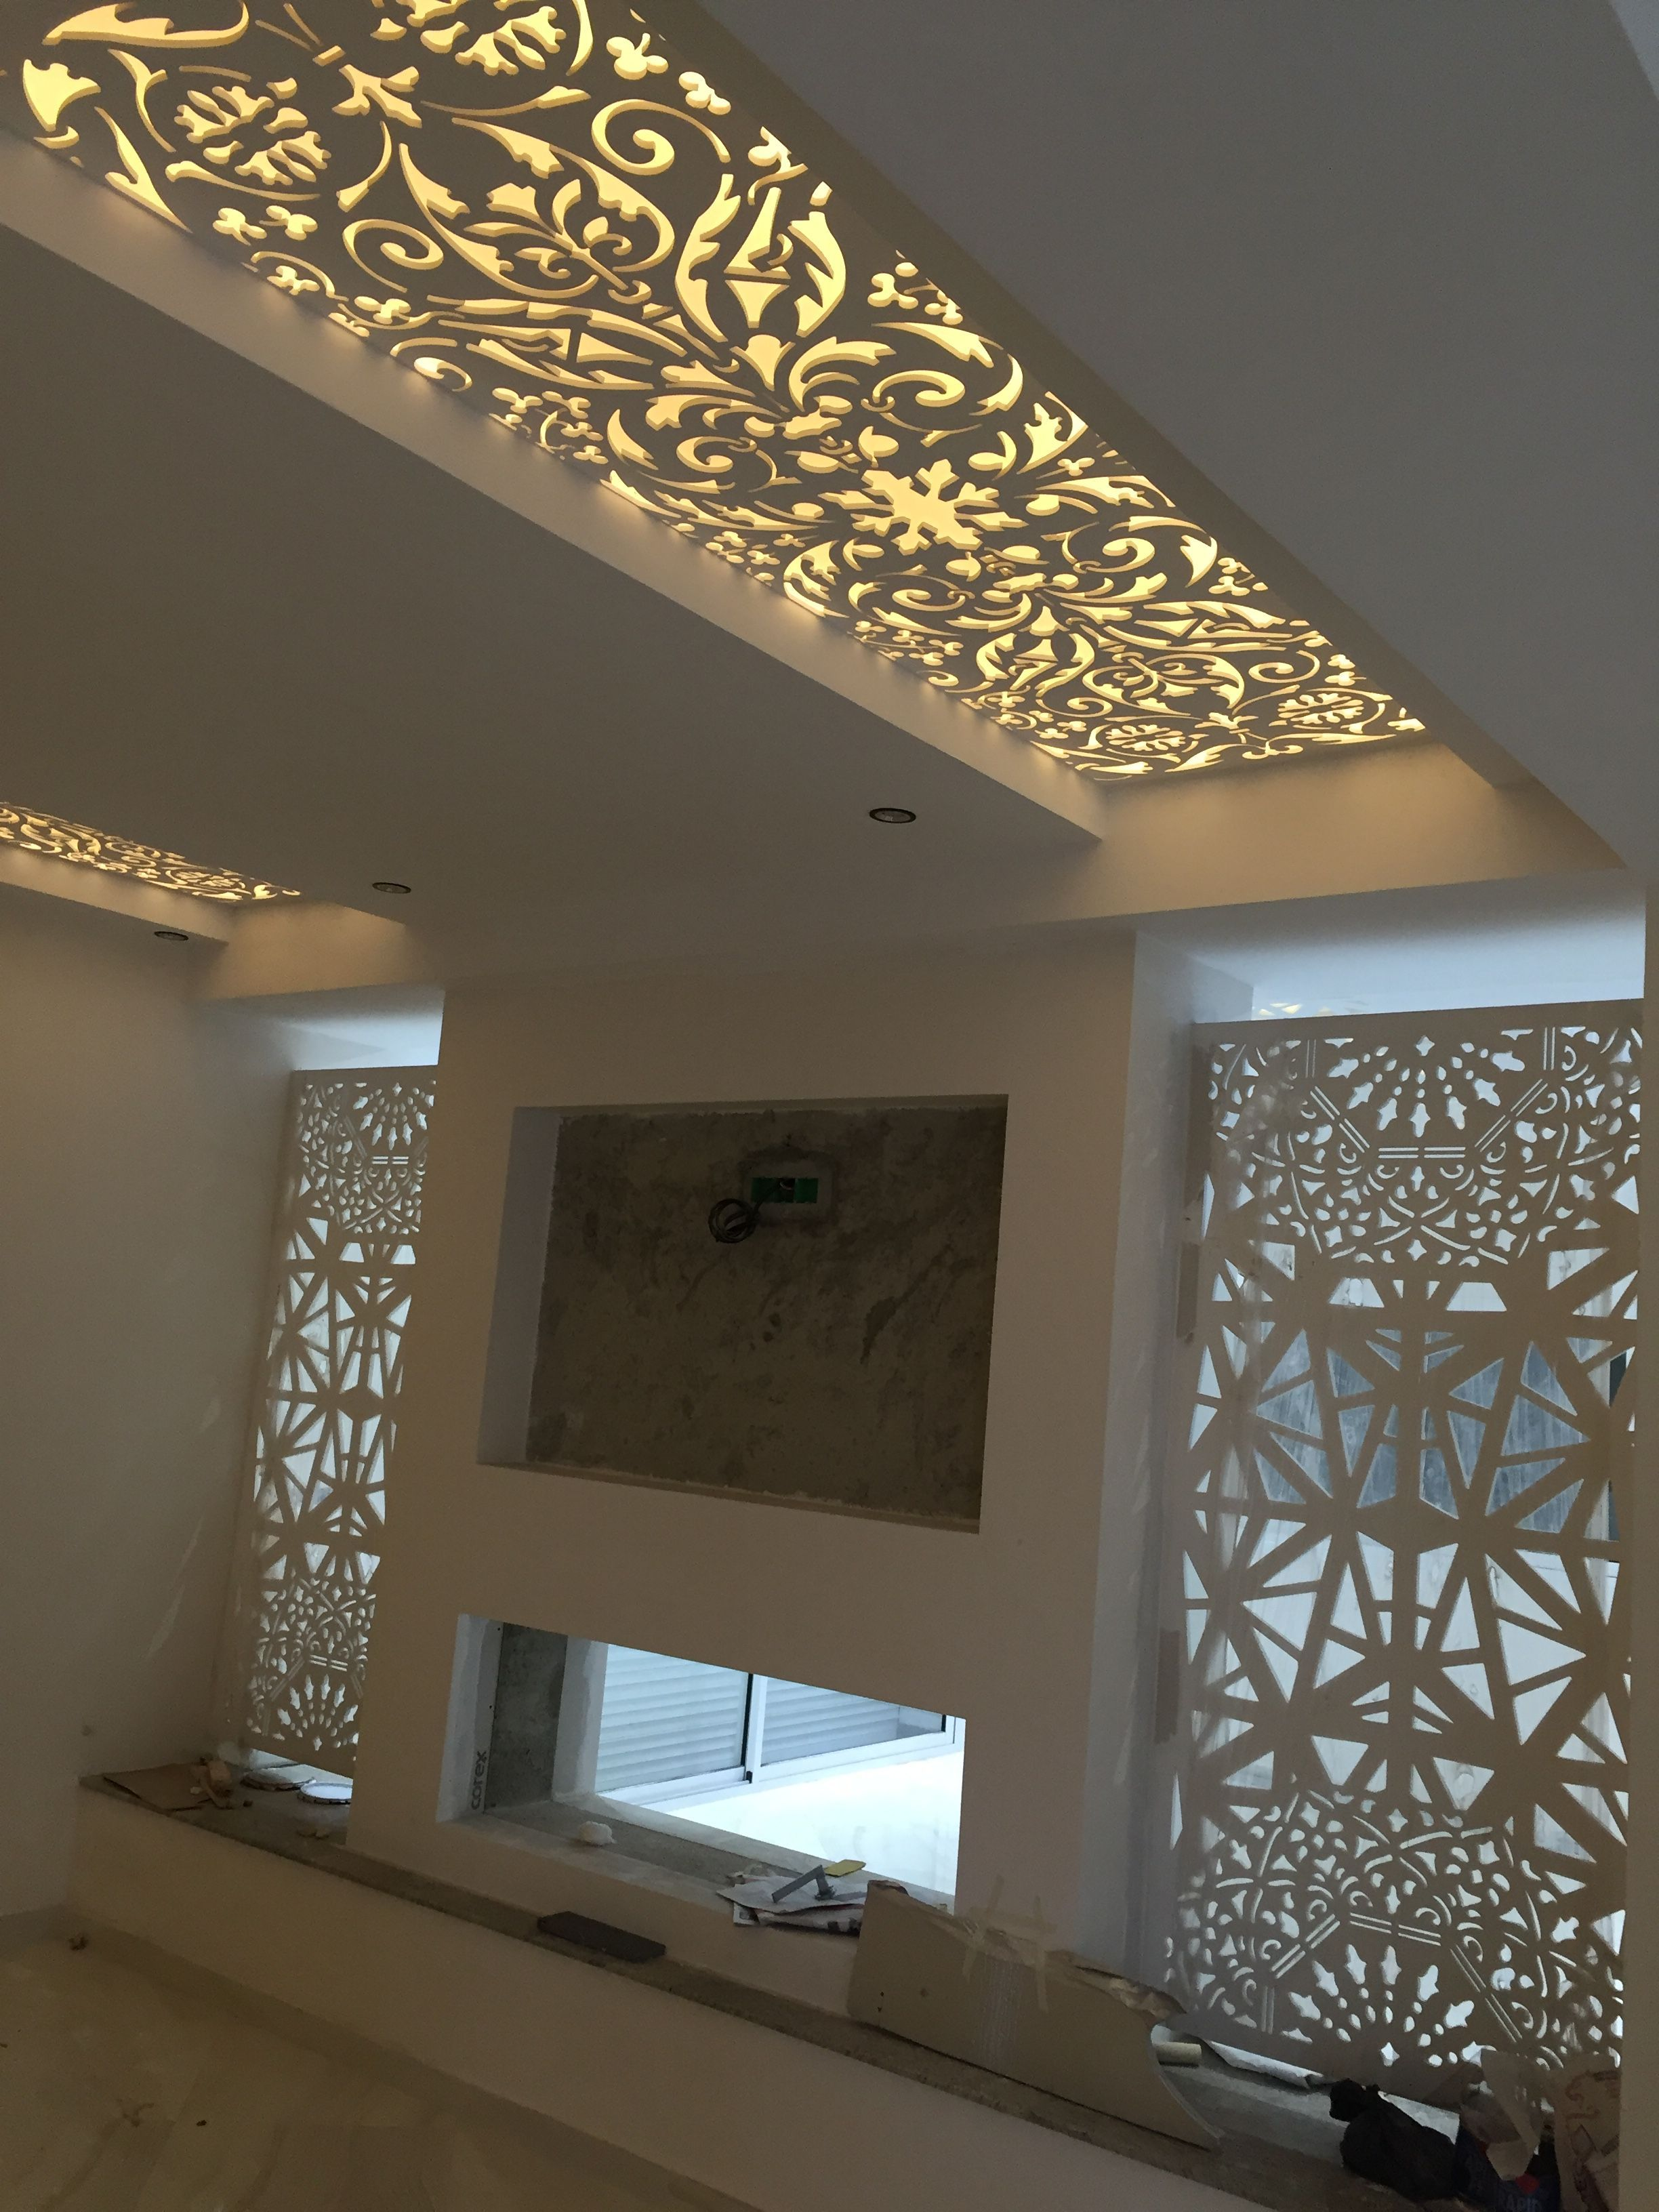 False Ceiling Designs For Small Rooms: Find Here Luxxu's Living Room Lighting Inspirations